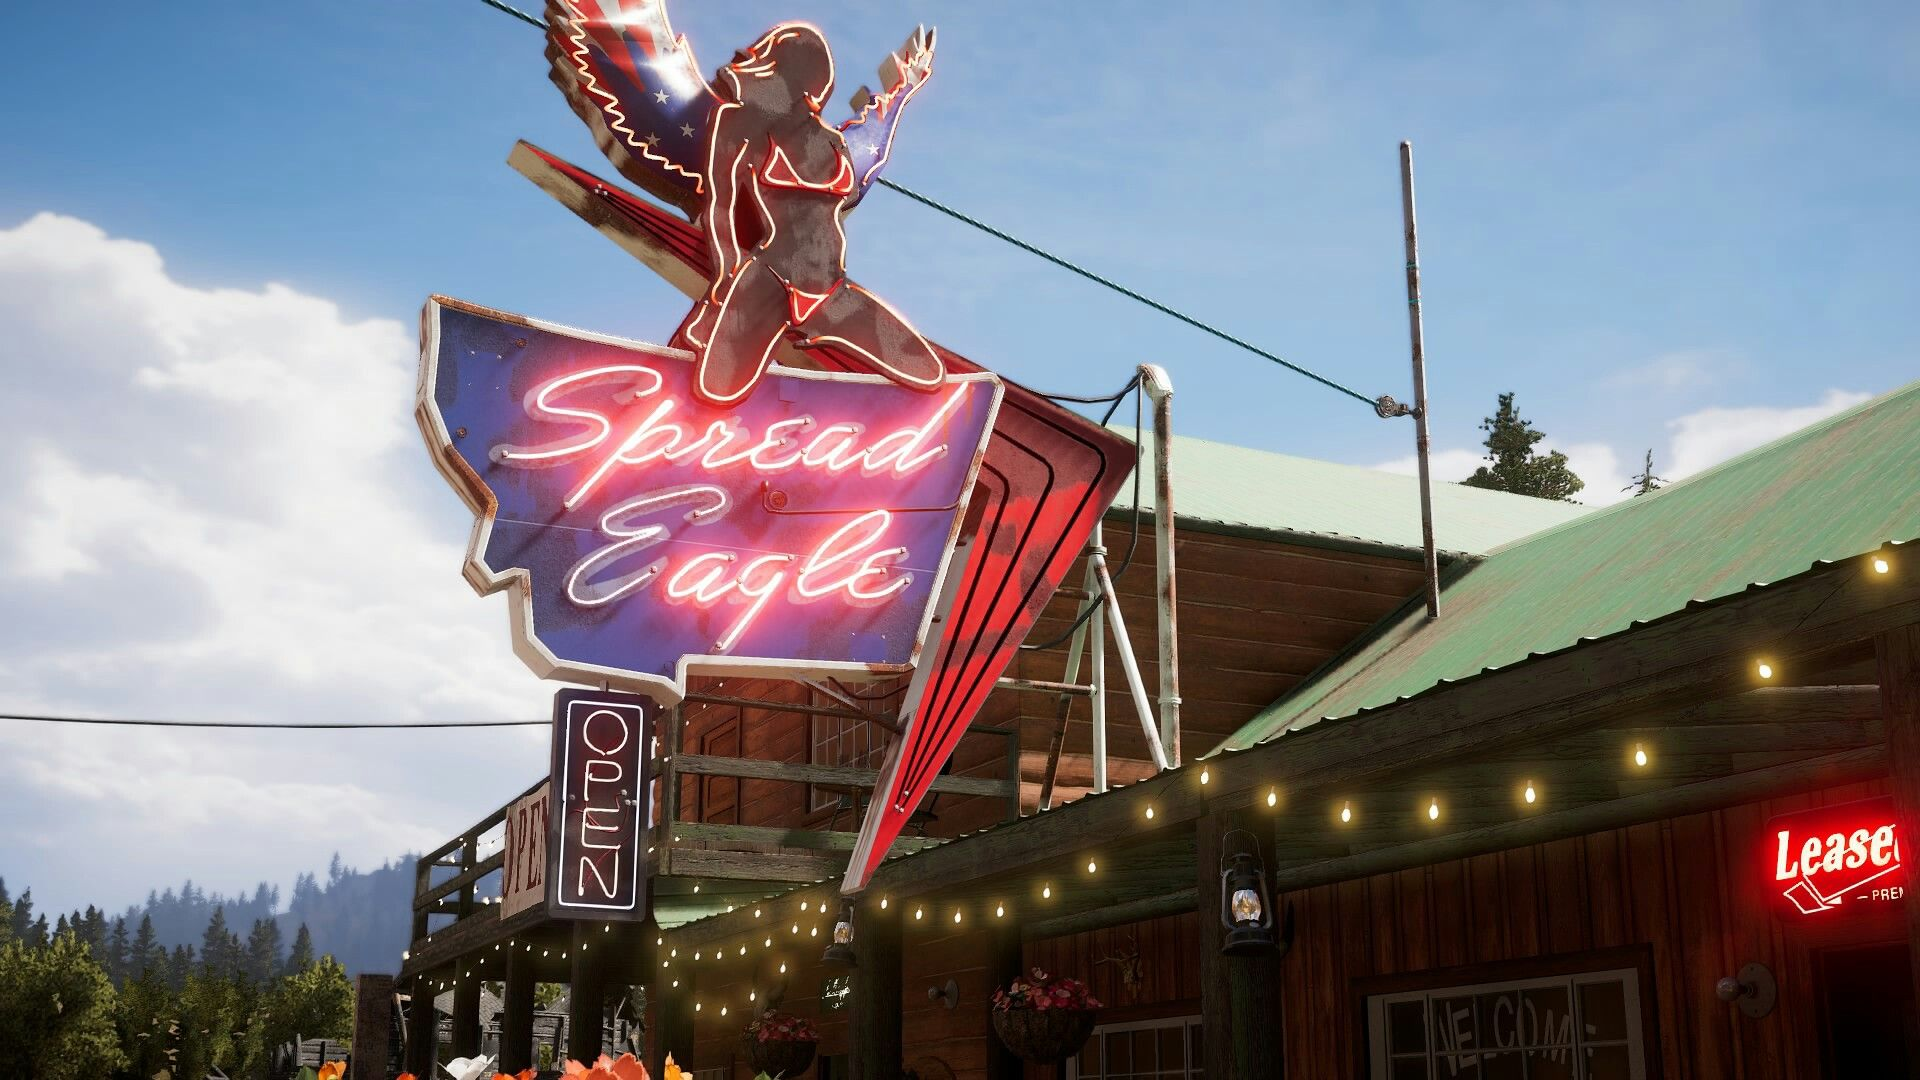 Pin by Karissa on Far cry 5 Neon signs, Burley, Neon